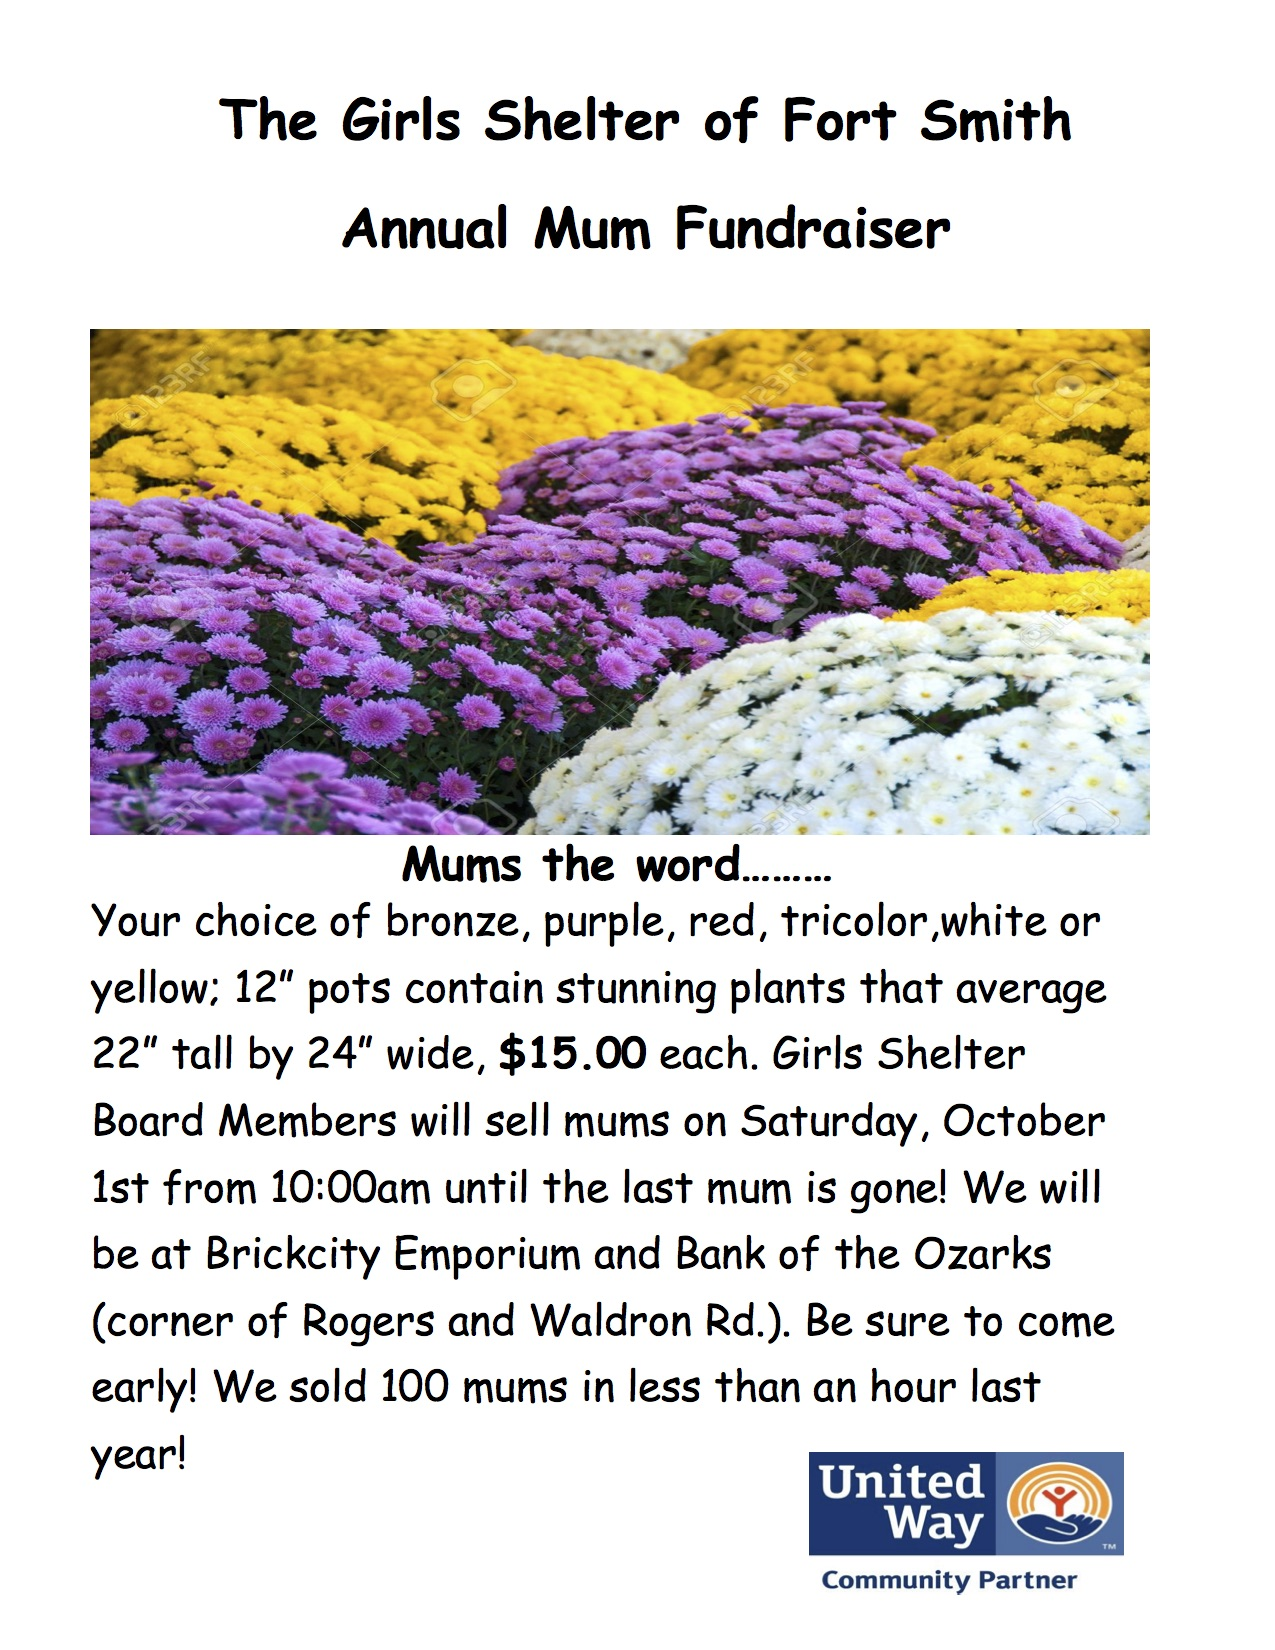 2016 mum fundraiser flyer things to do in fort smith